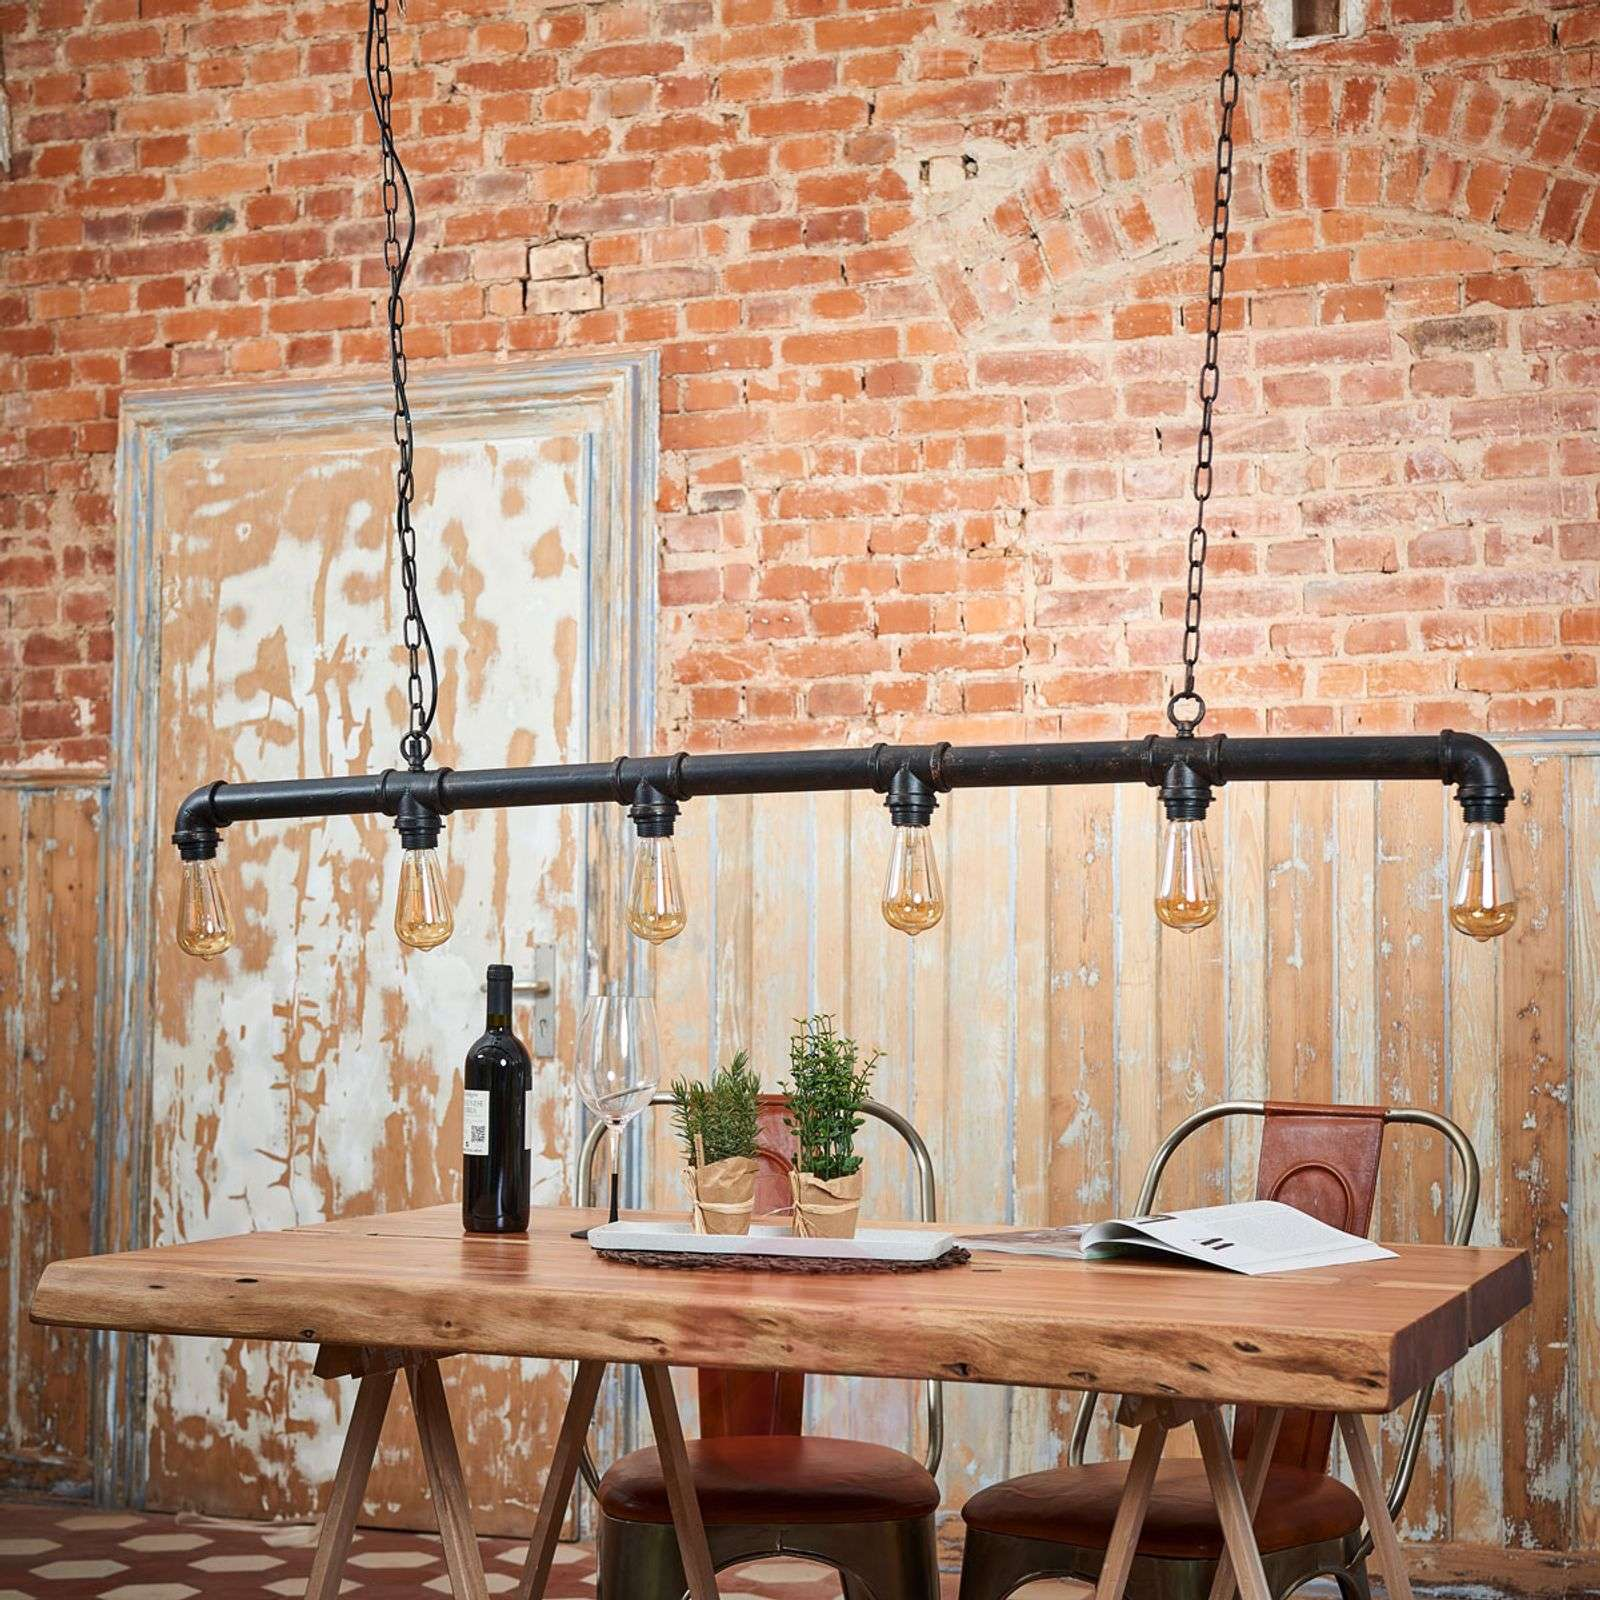 Tap pipe-shaped hanging light, 6-bulb, down-9634051-02